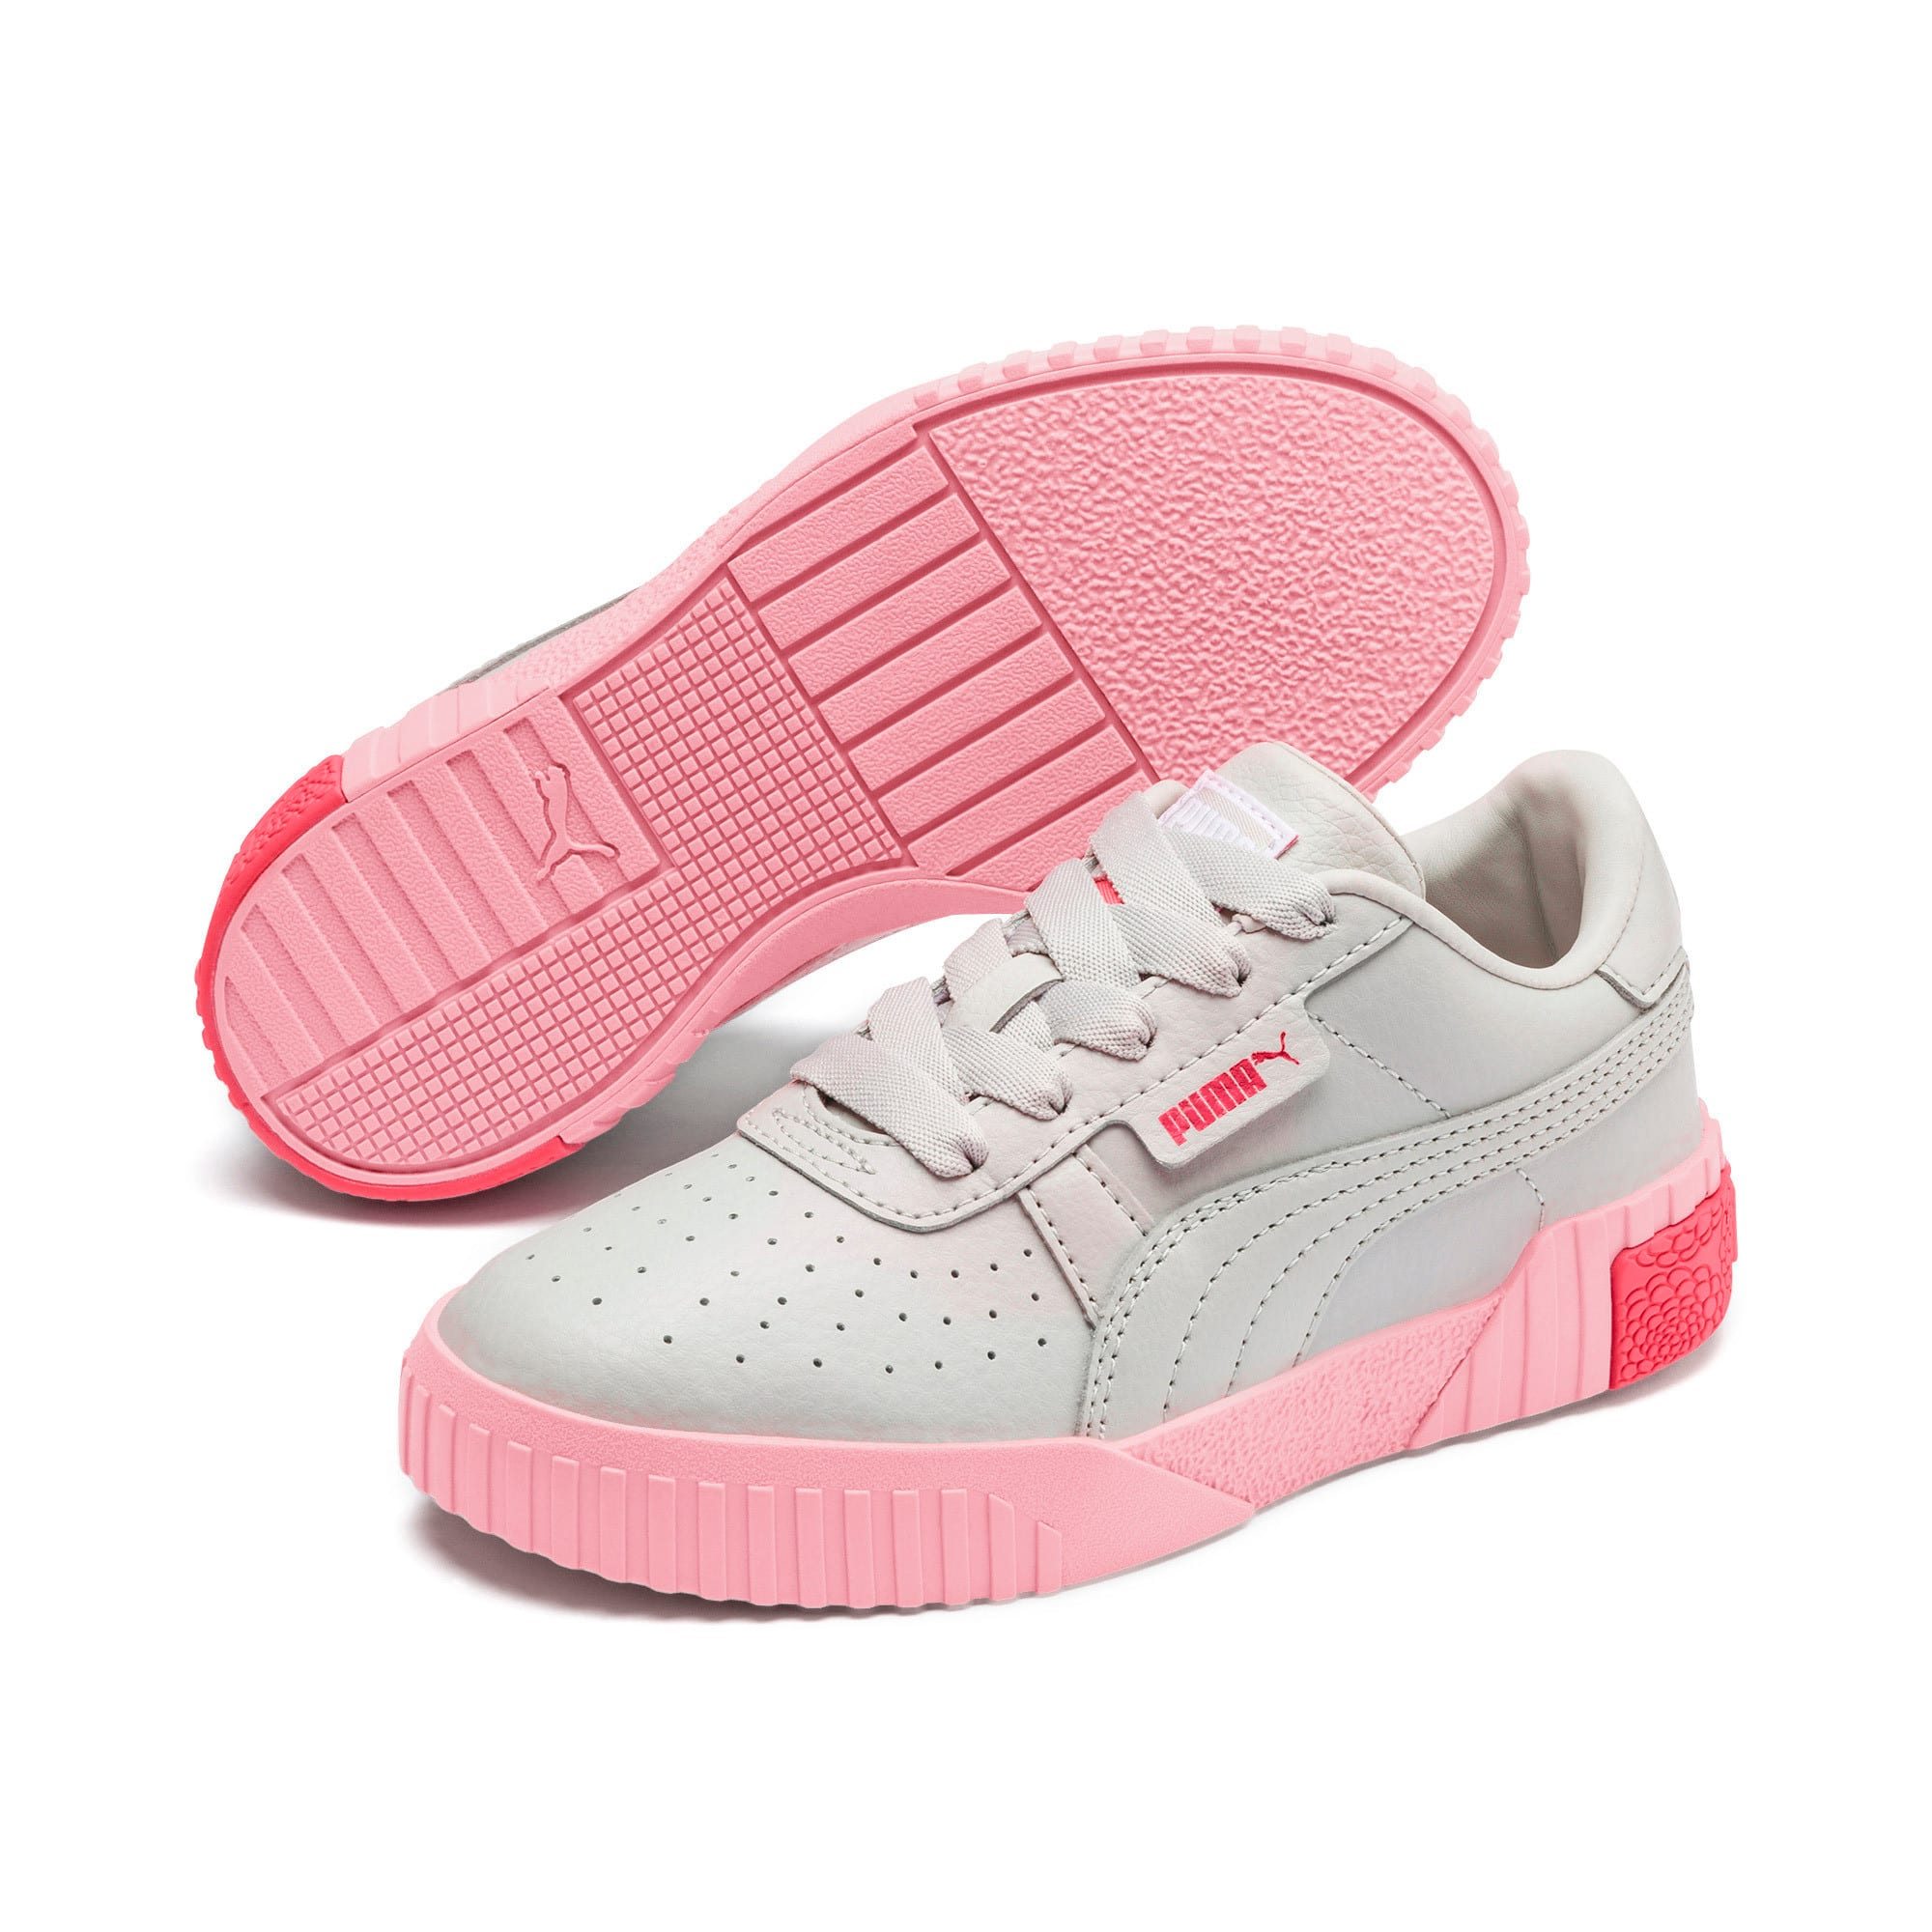 Thumbnail 2 of Cali Little Kids' Shoes, Gray Violet-Calypso Coral, medium